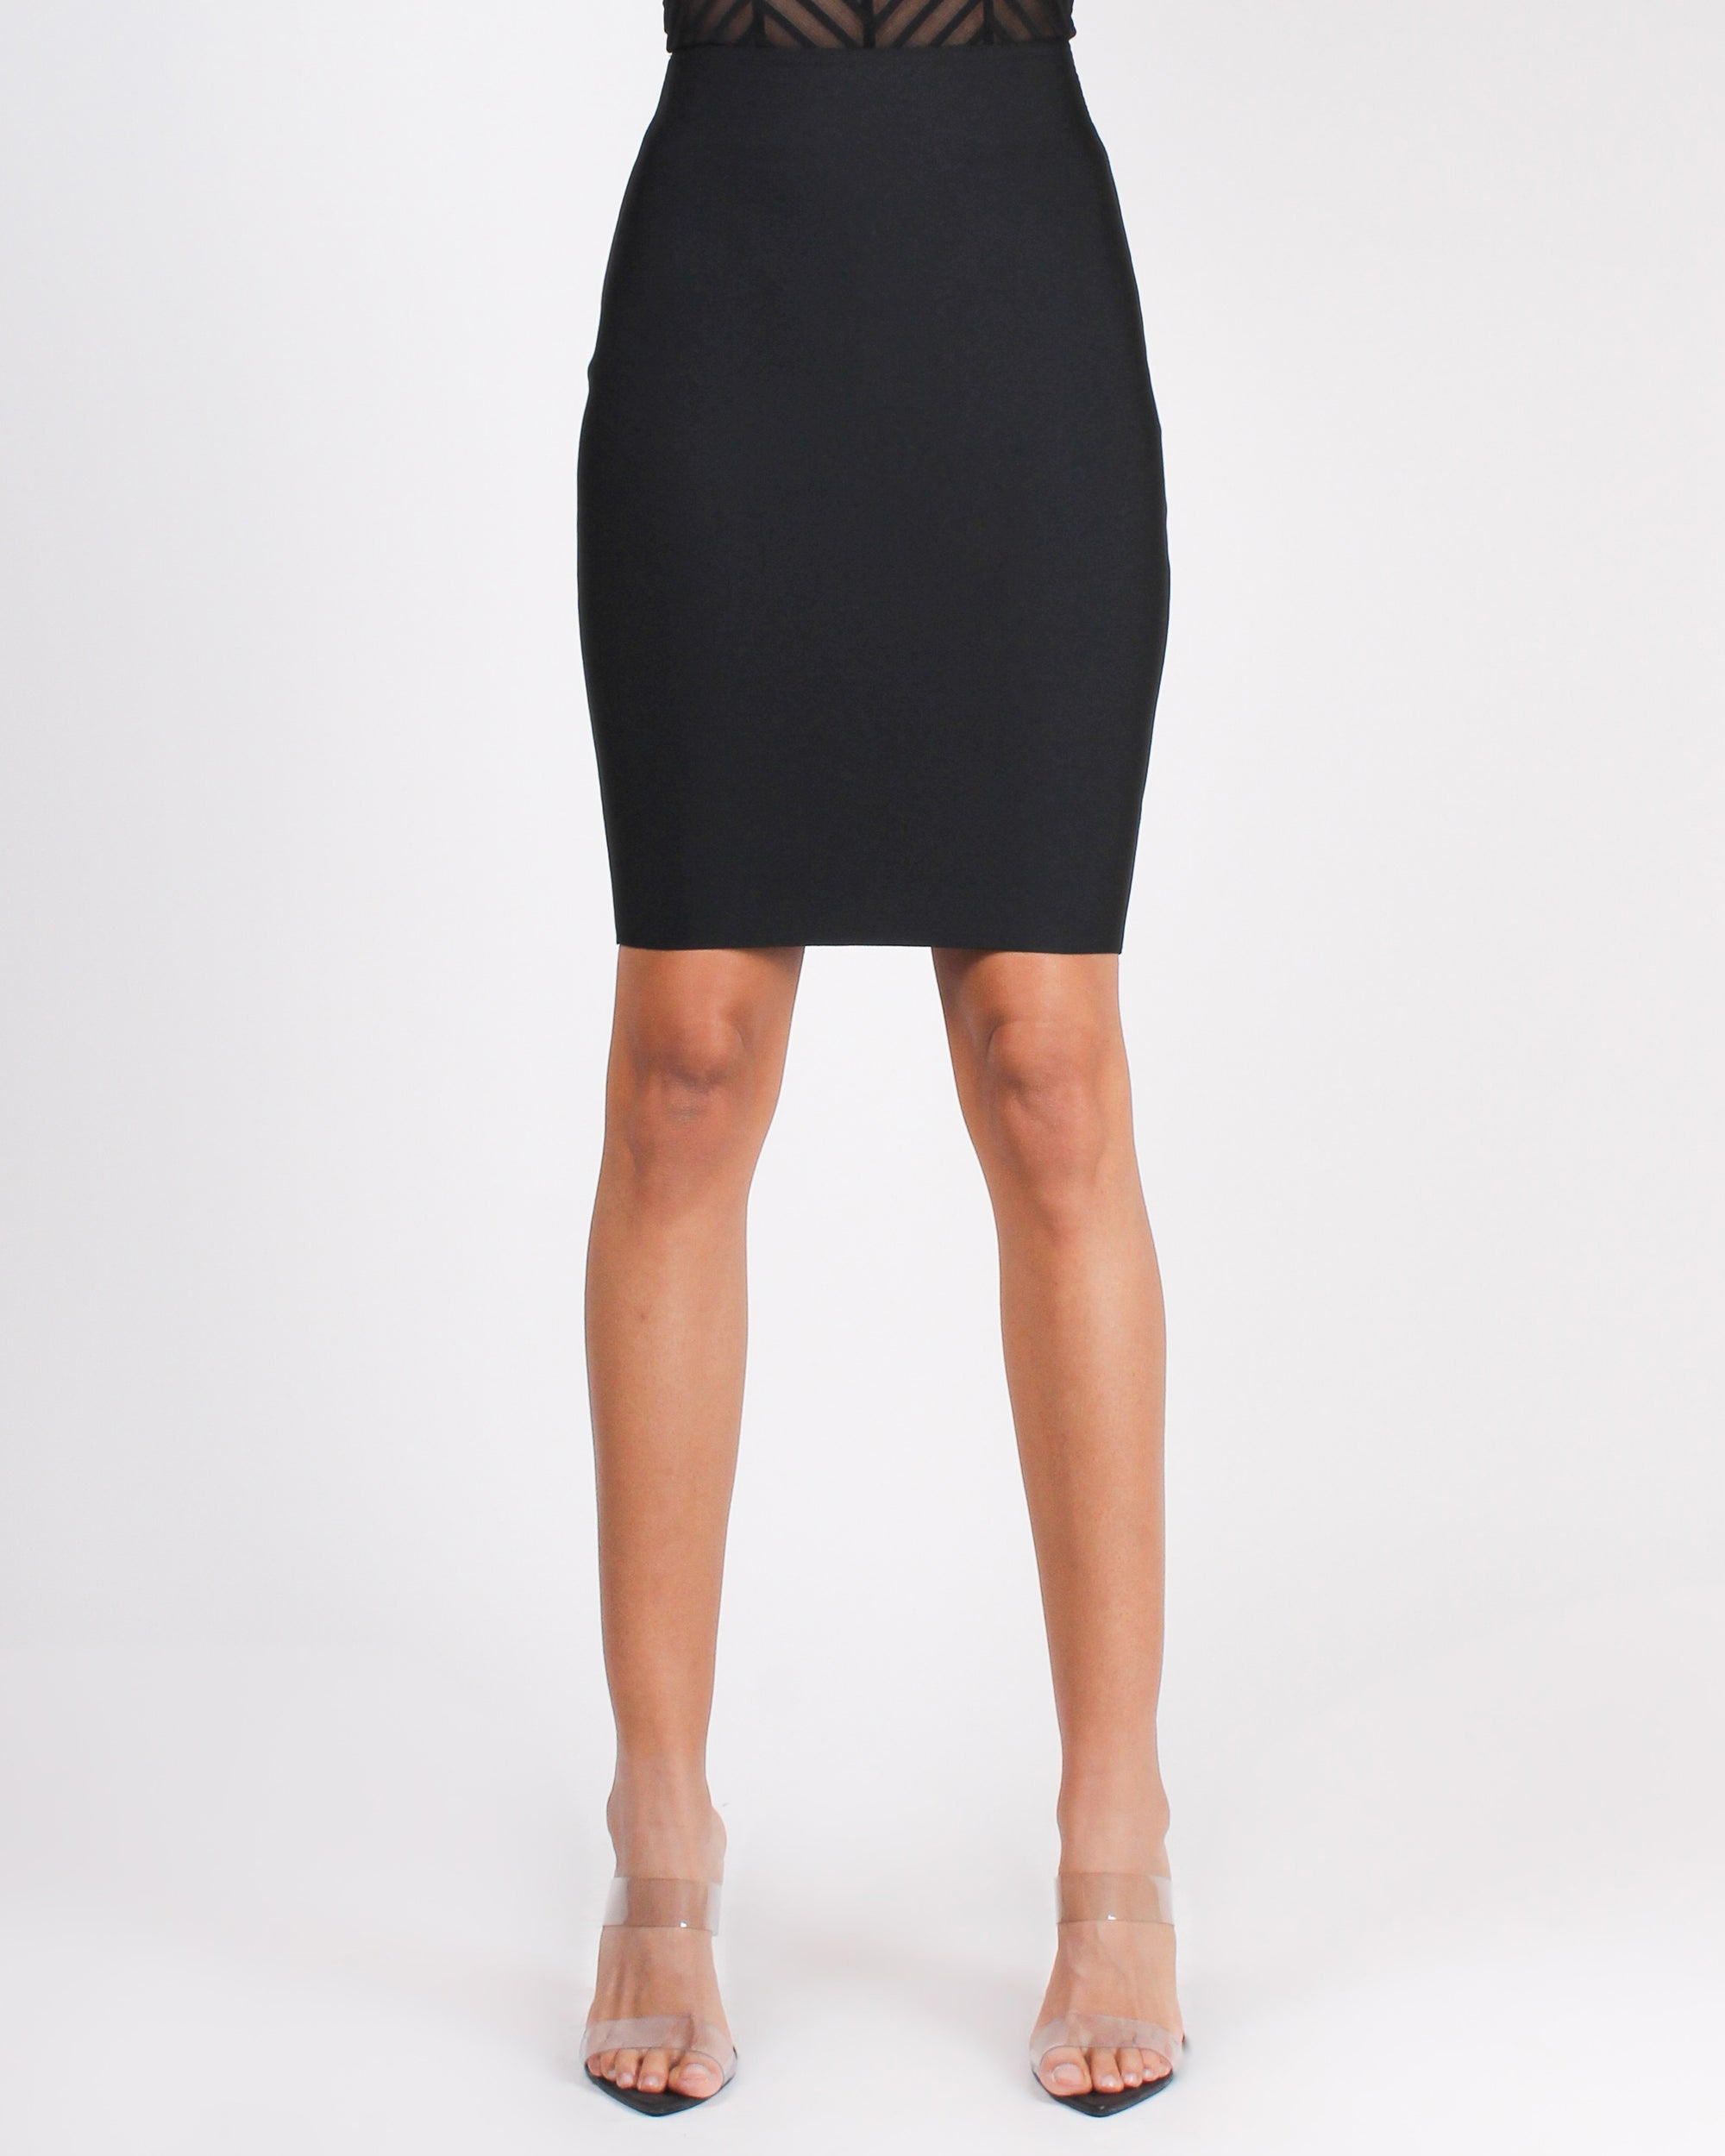 Fashion Q Shop Q Stand Up and Realize Who You Are Pencil Skirt HS7072B